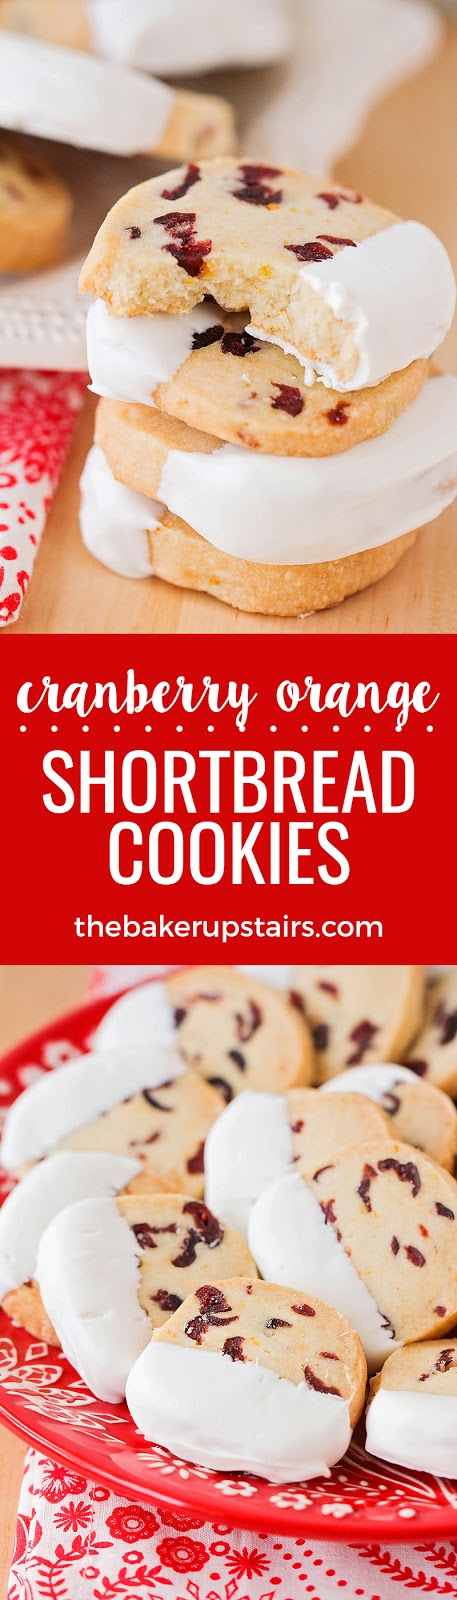 These cranberry orange shortbread cookies are rich and buttery, with the perfect contrast of flavors and textures!